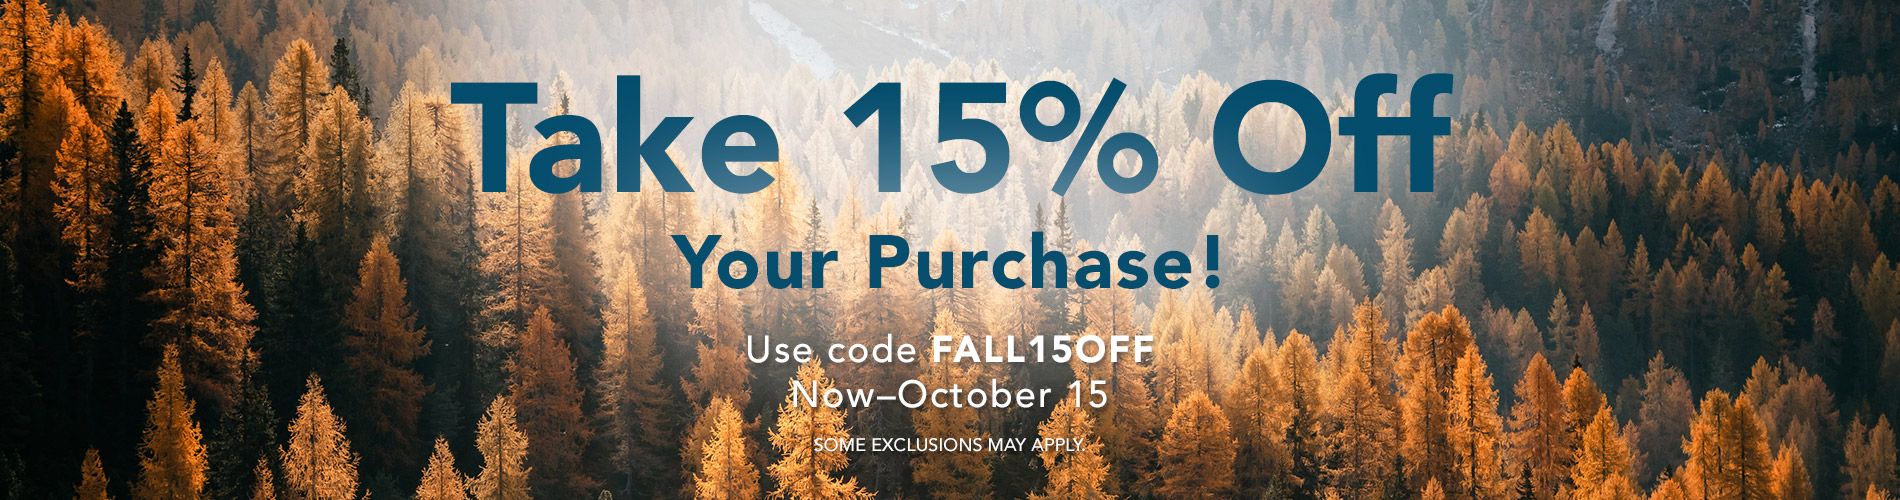 Take 15% Off Your Purchase! Use code FALL15OFF now through October 15. Some exclusions may apply.